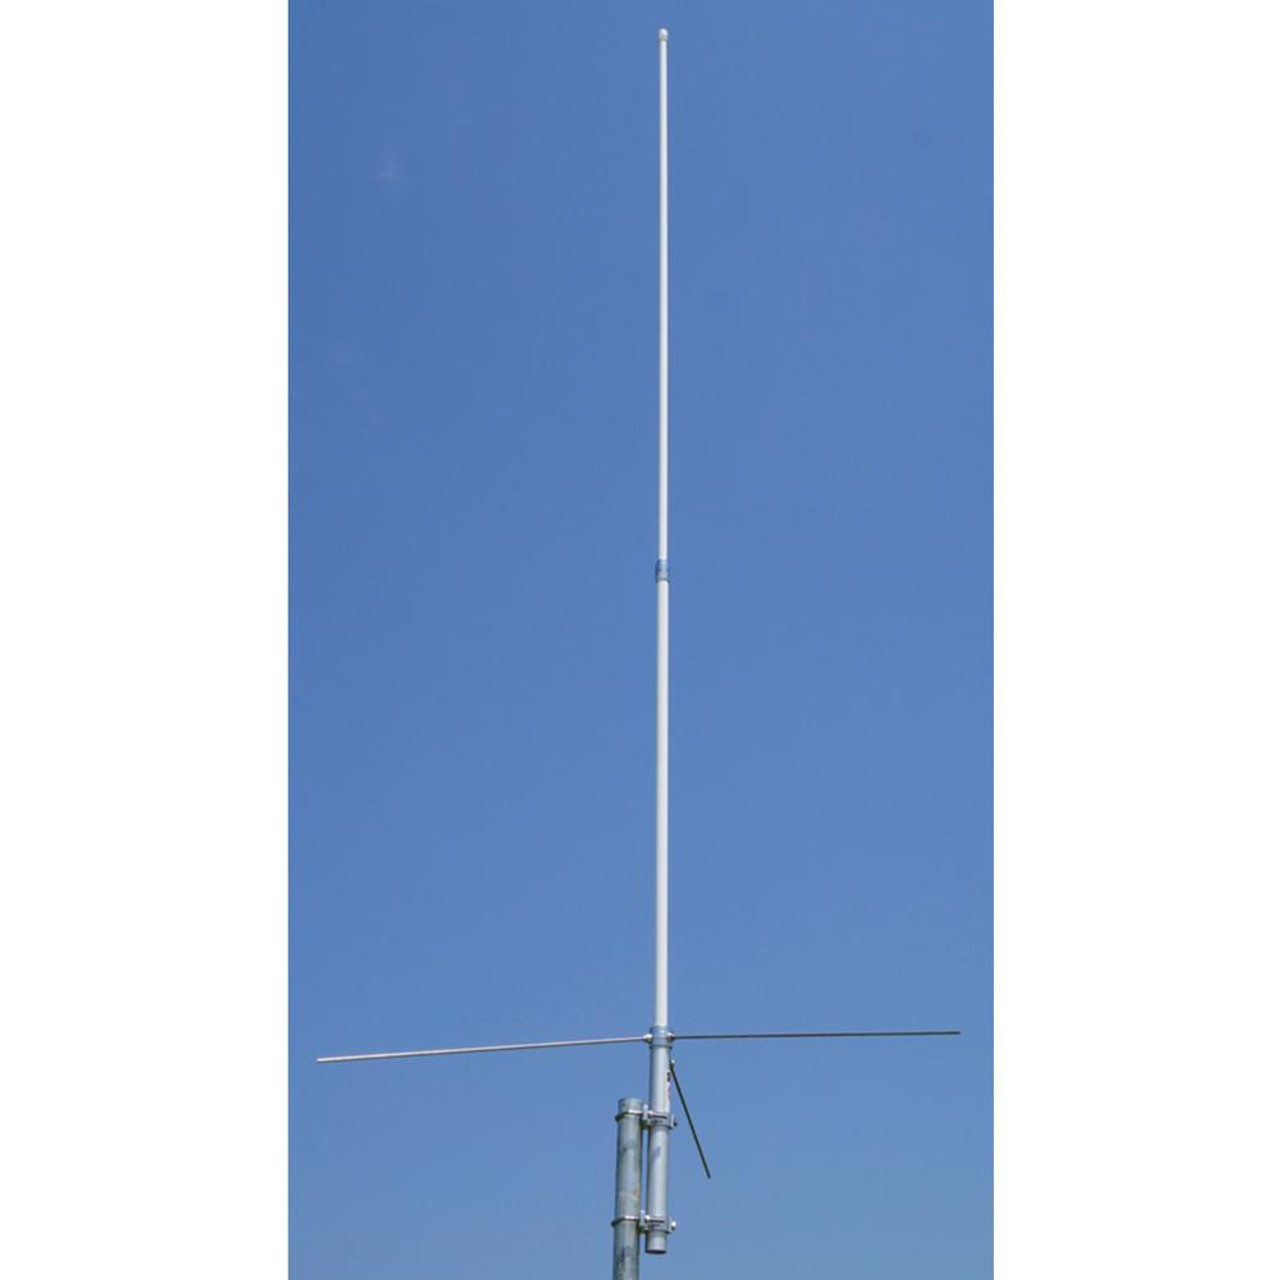 Tram-Browning BR-1480 Dual Band VHF/UHF Base Antenna